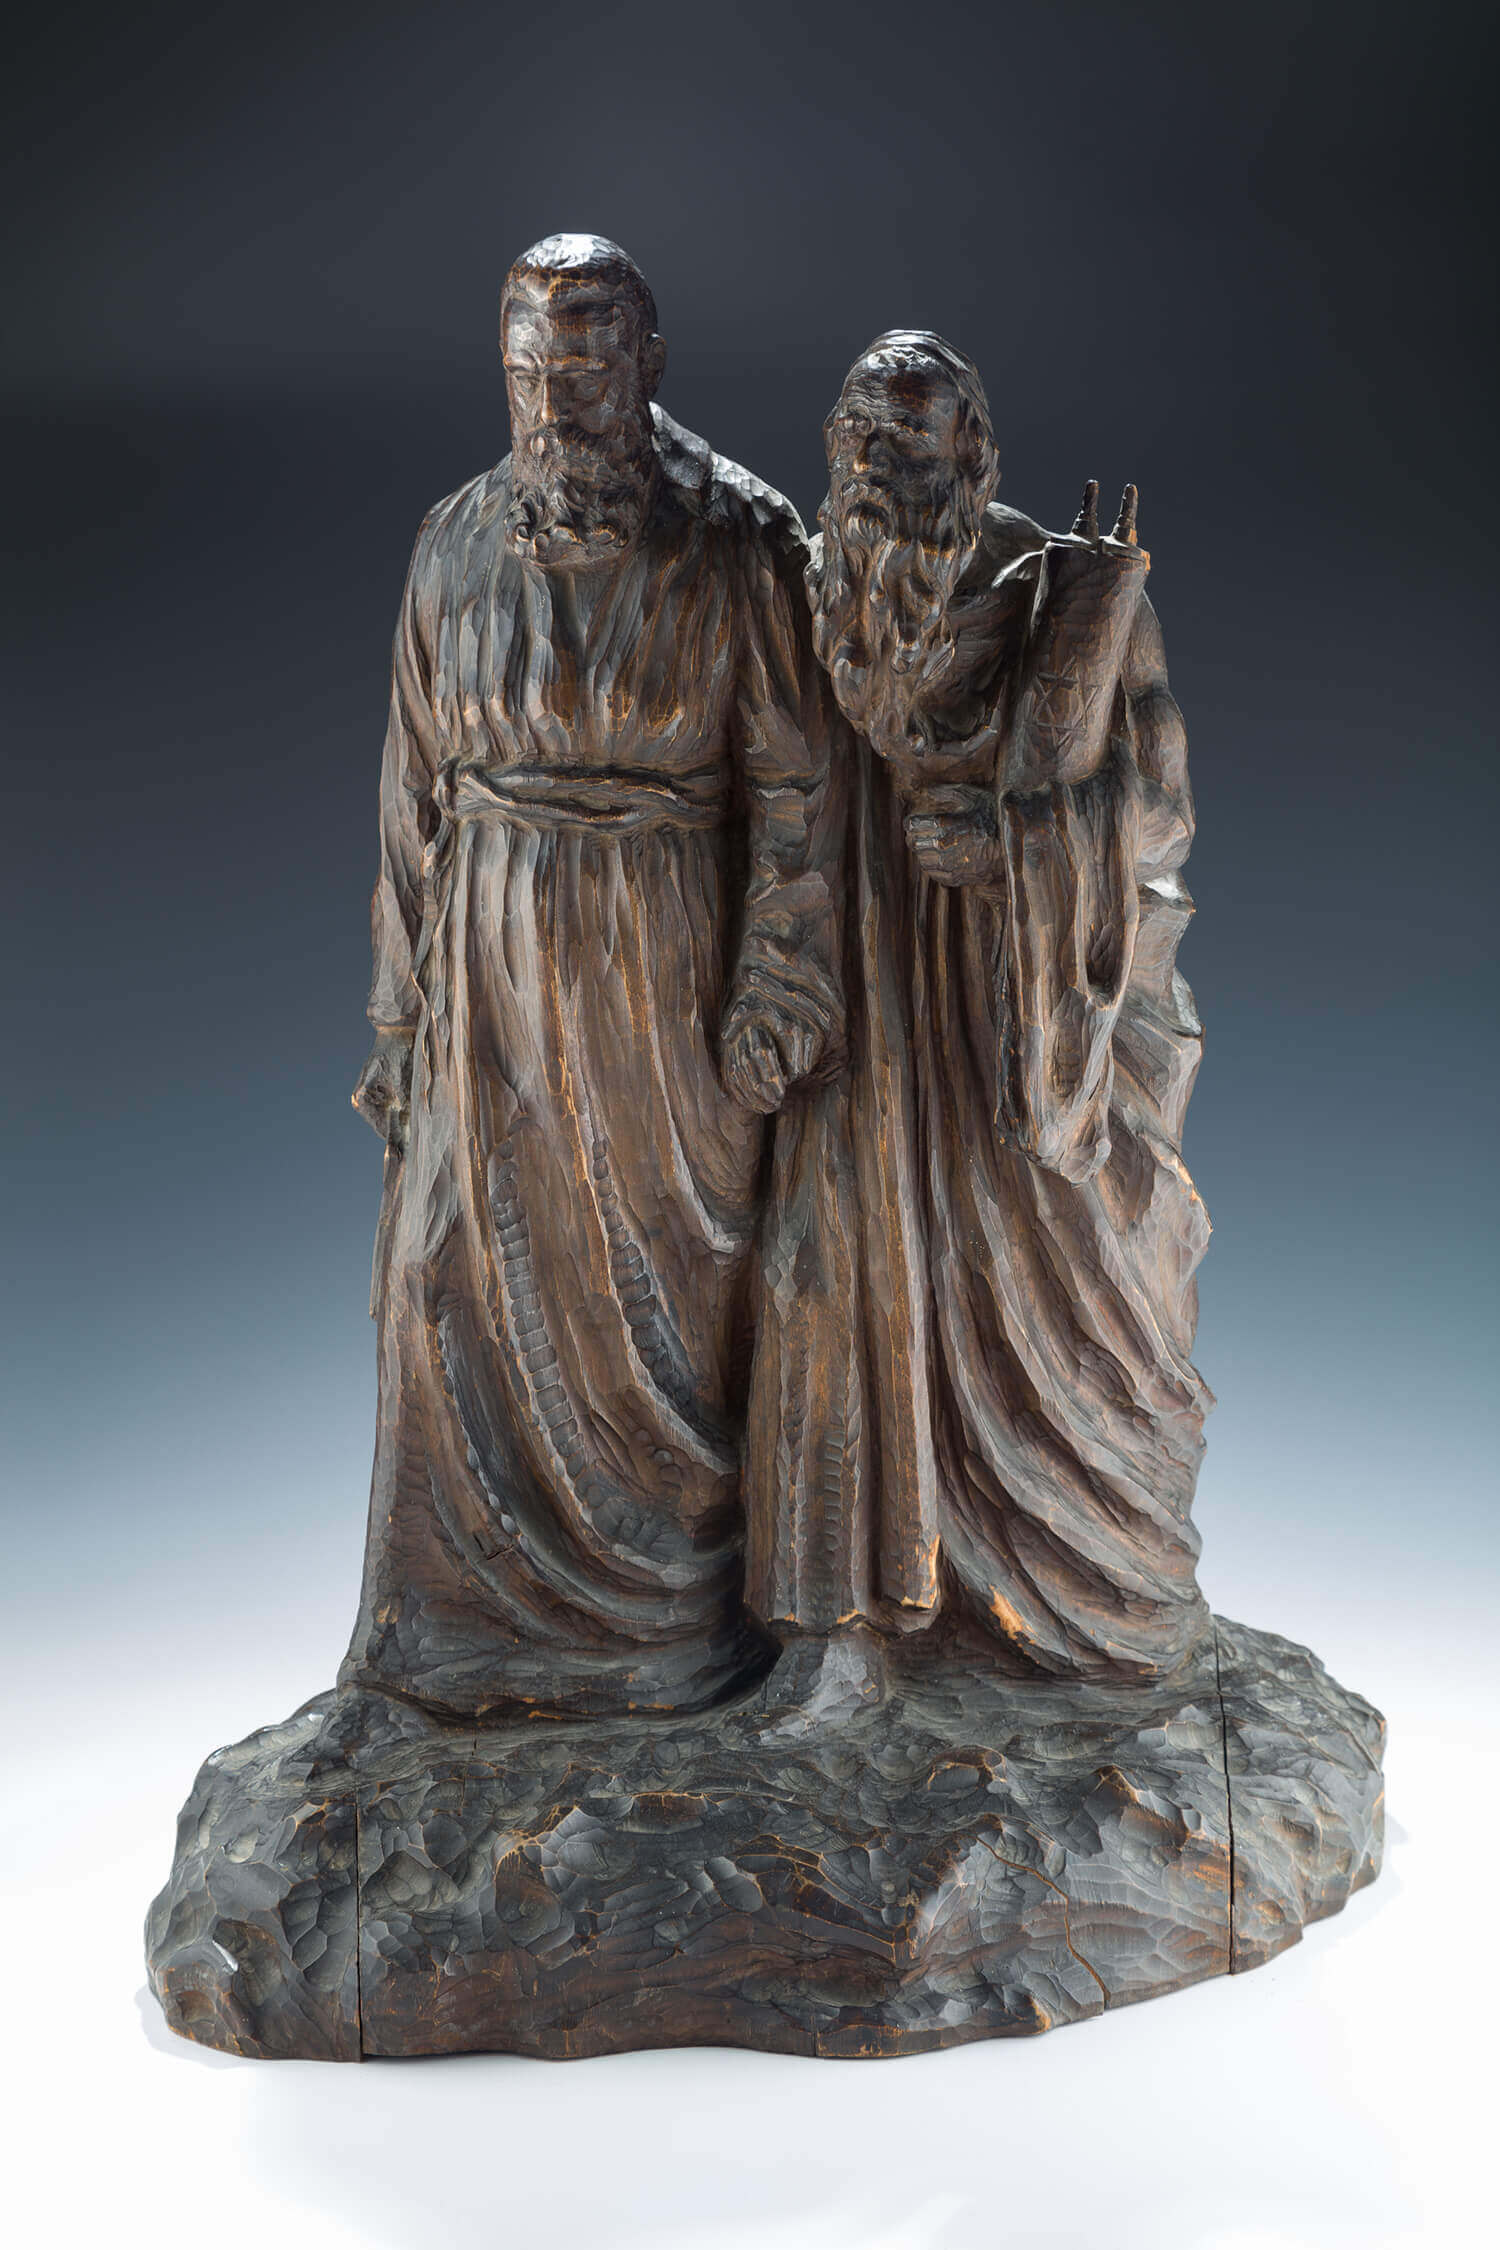 068. A LARGE WOODEN SCULPTURE OF THEODOR HERZL LEADING MOSES TO THE PROMISED LAND